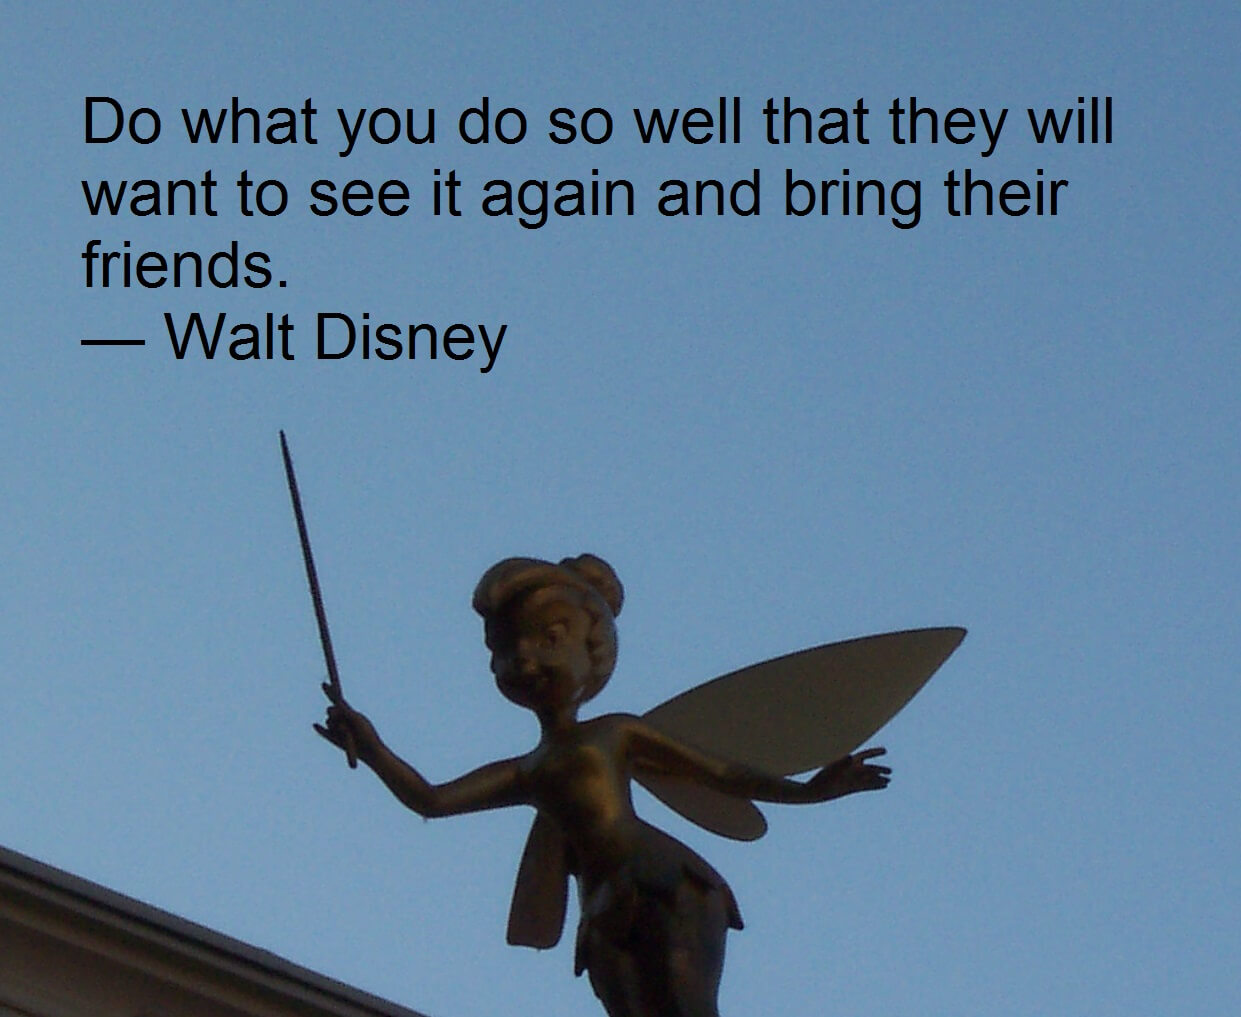 Walt disney quote do what you do bring their friends 20140331